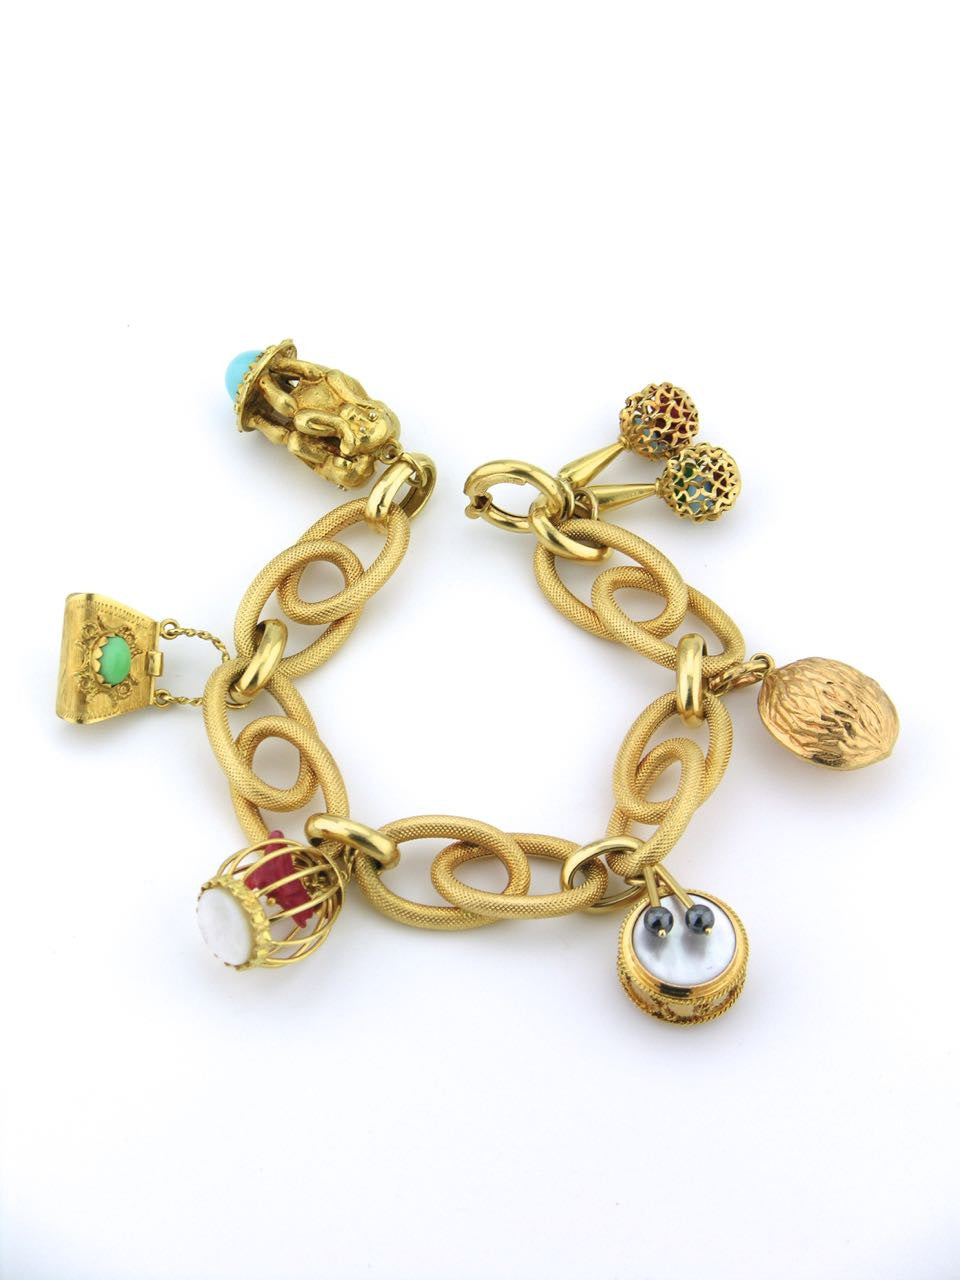 Italian large scale retro 18ct gold charm bracelet